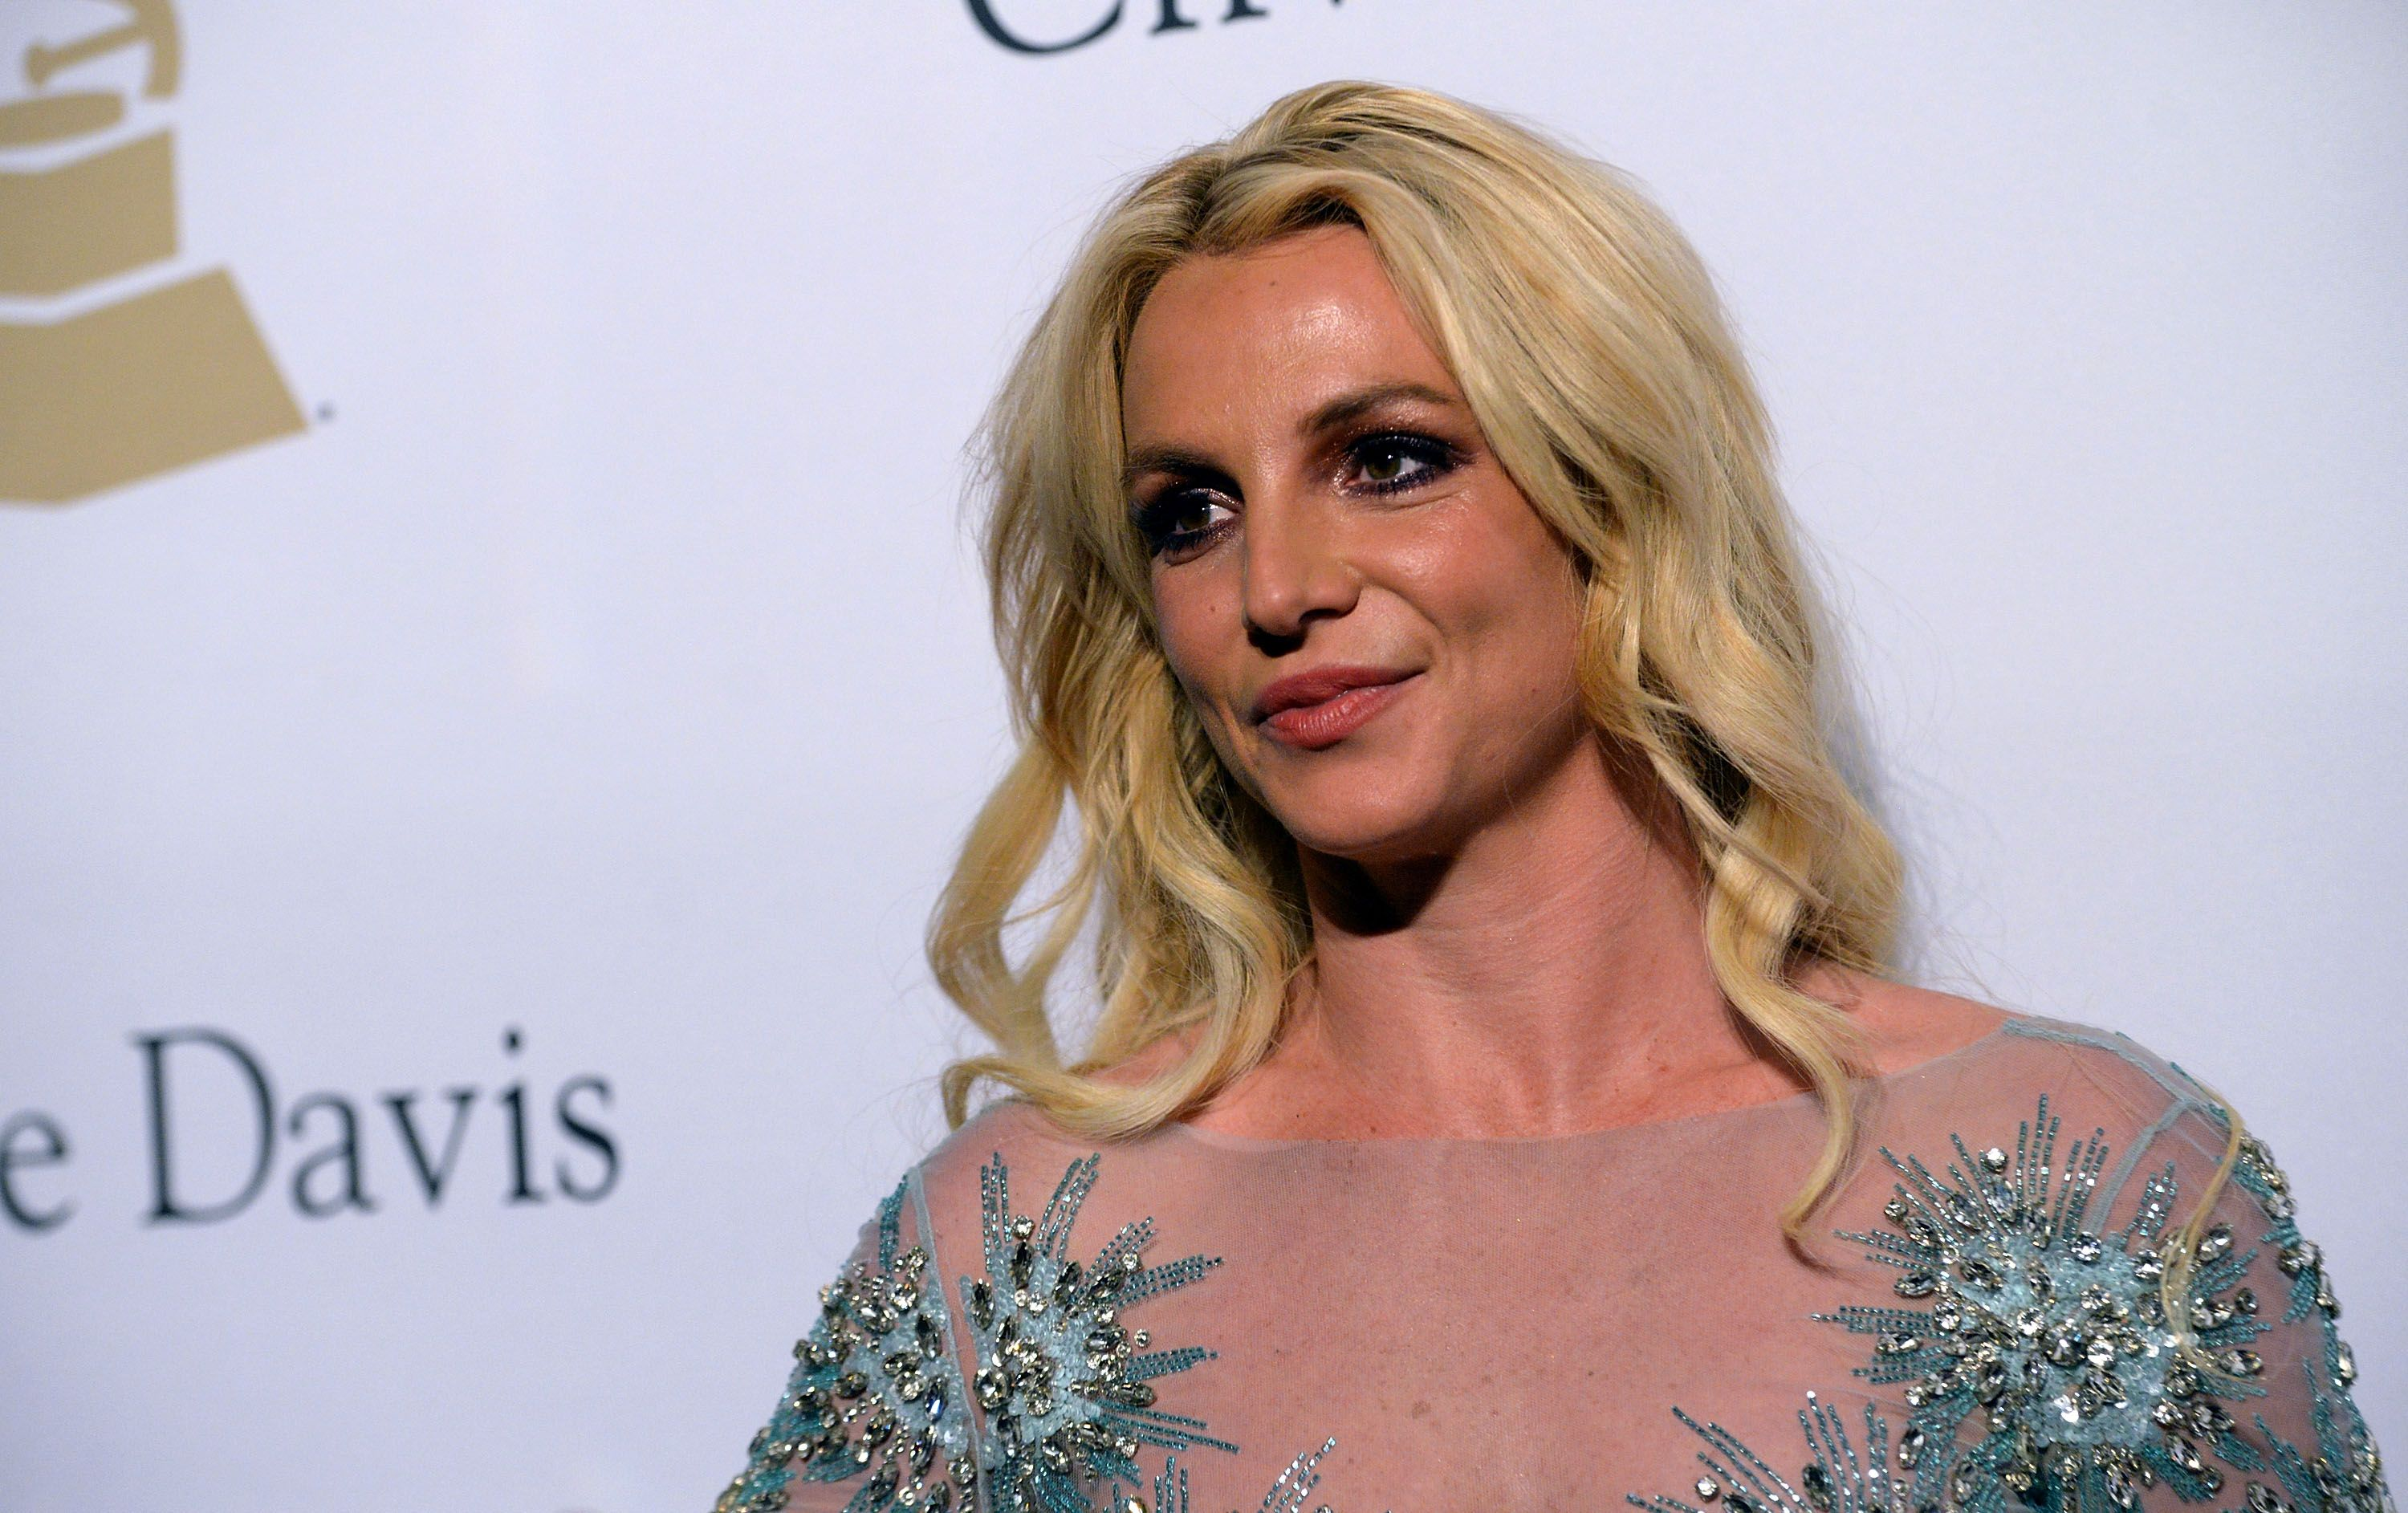 Britney Spears walks the red carpet at the 2017 Pre-GRAMMY Gala And Salute to Industry Icons Honoring Debra Lee at The Beverly Hilton Hotel on February 11, 2017 in Beverly Hills, California.   Source: Getty Images